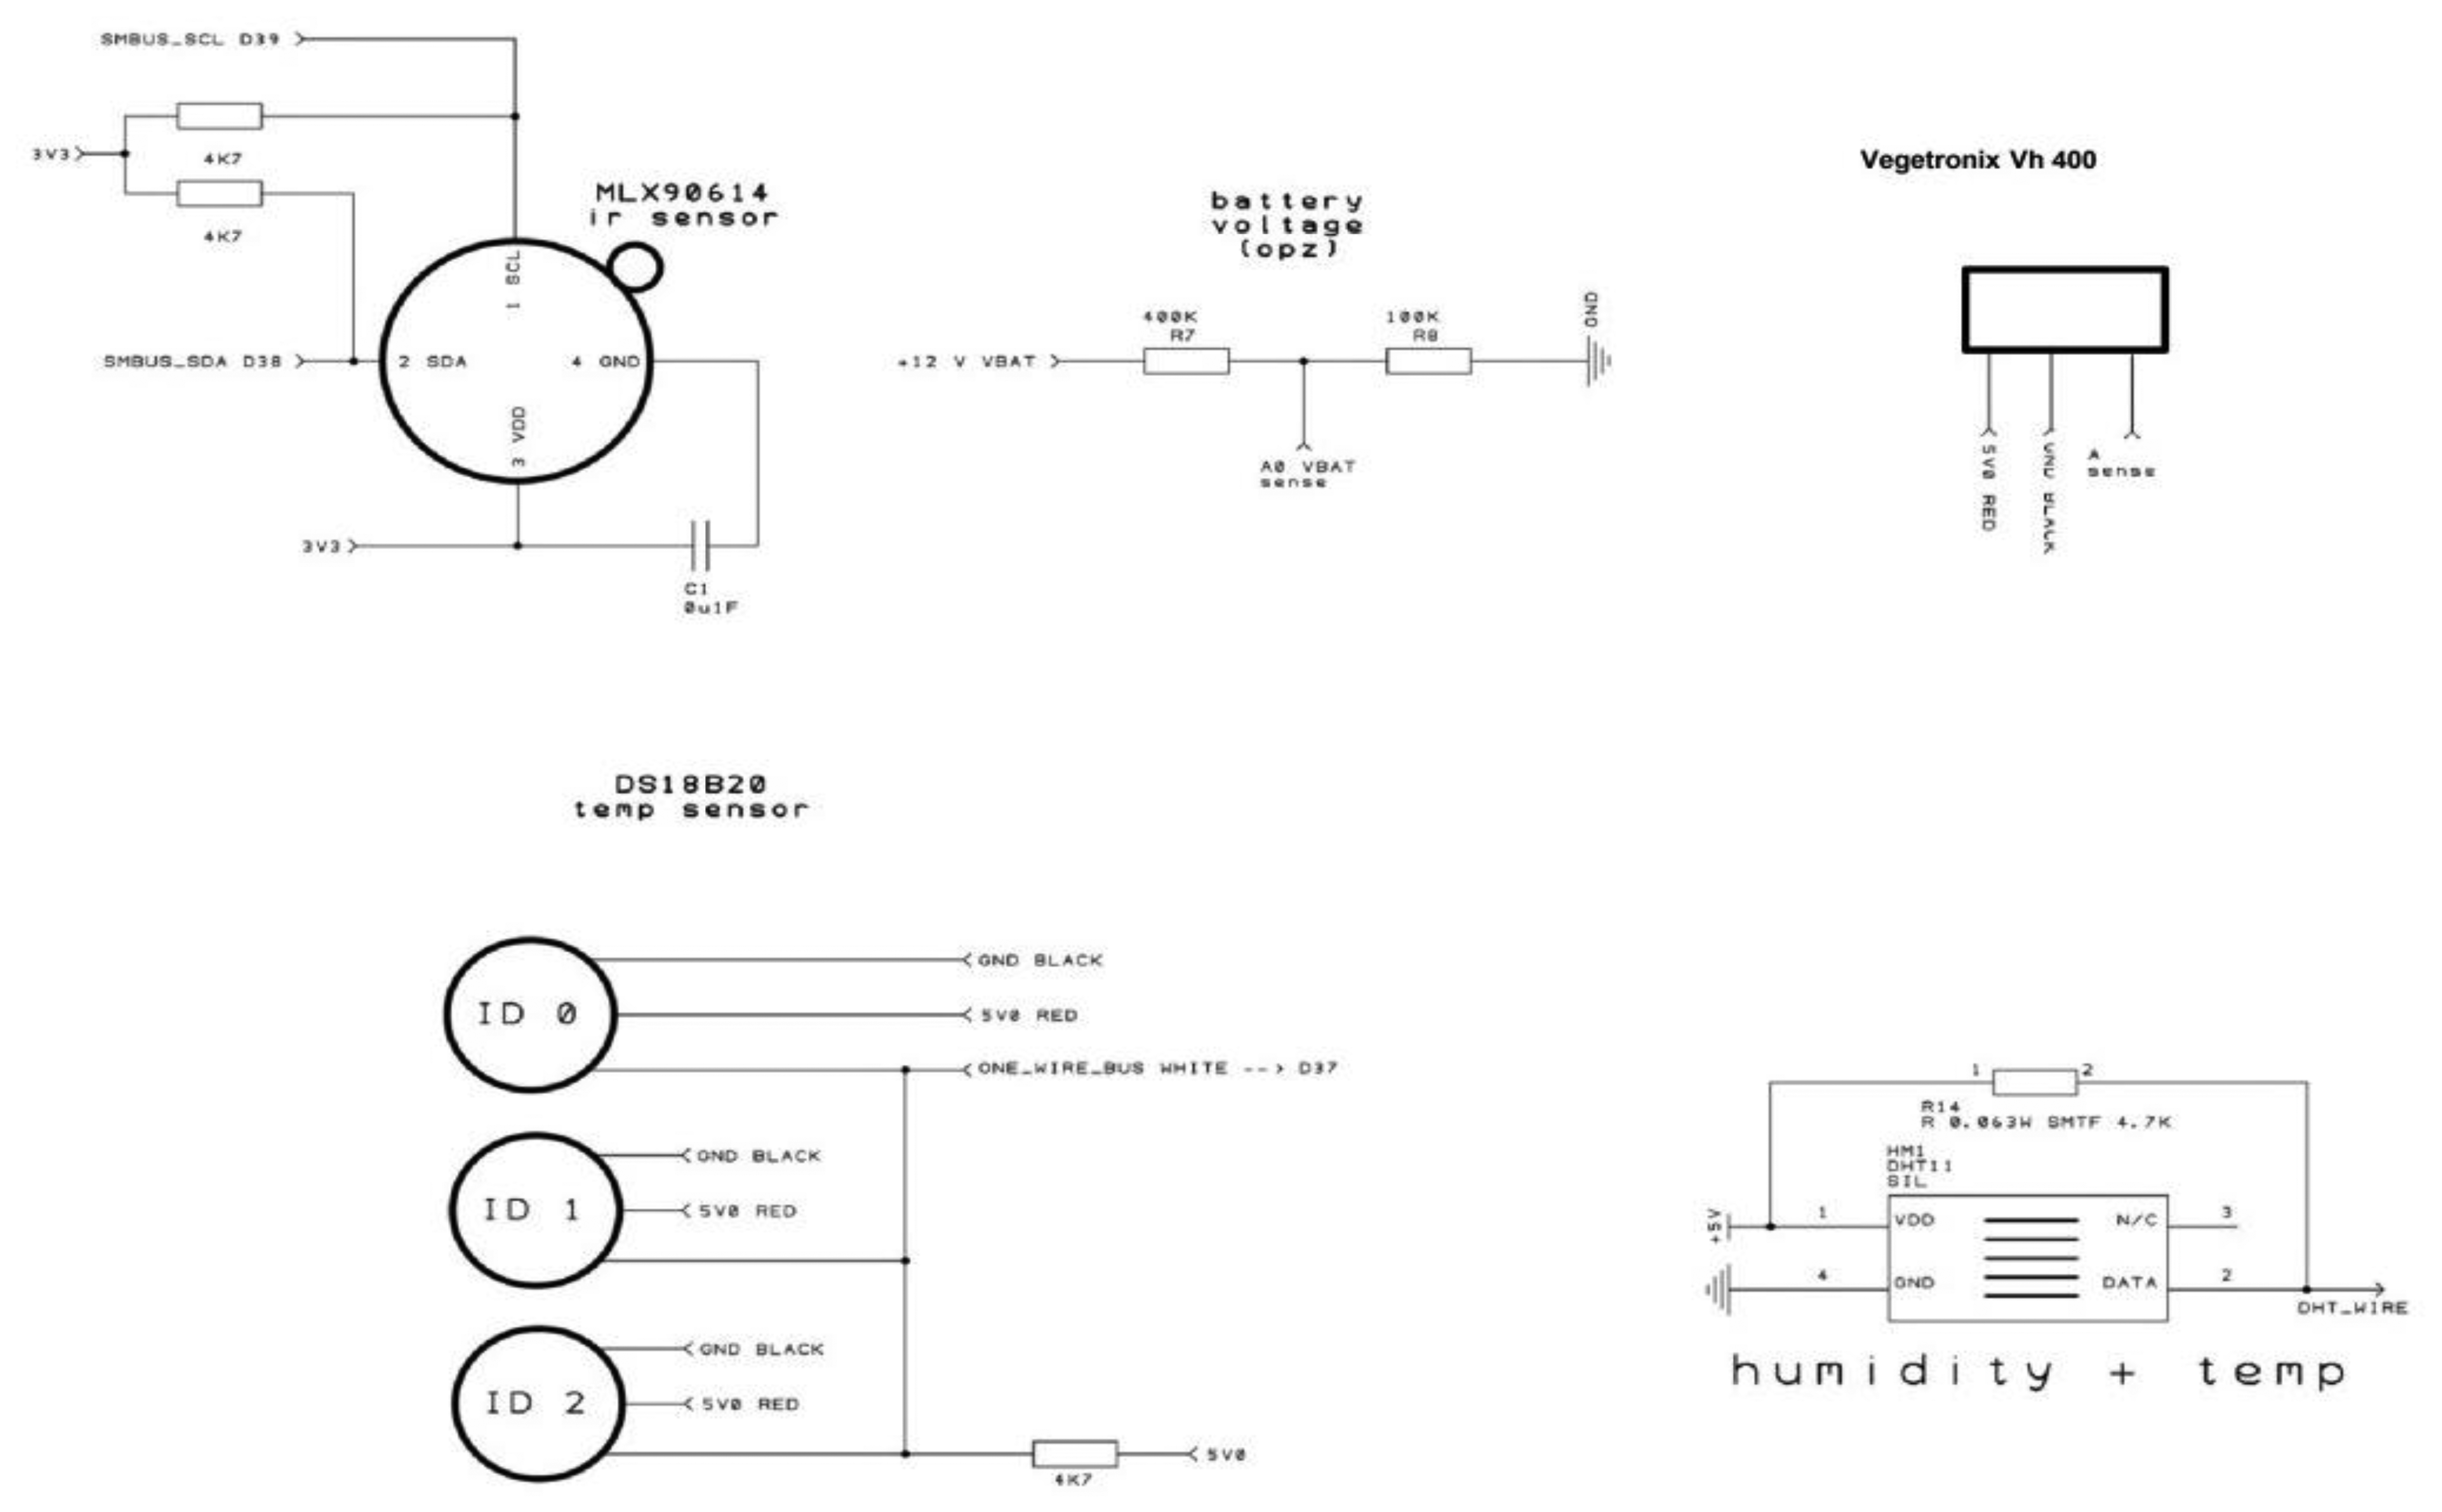 Sensors Free Full Text A Novel Low Cost Open Hardware Platform Fig 2 Digital Thermometer Schematic By Using Pic Microcontroller 14 19639f7 1024 Scheme